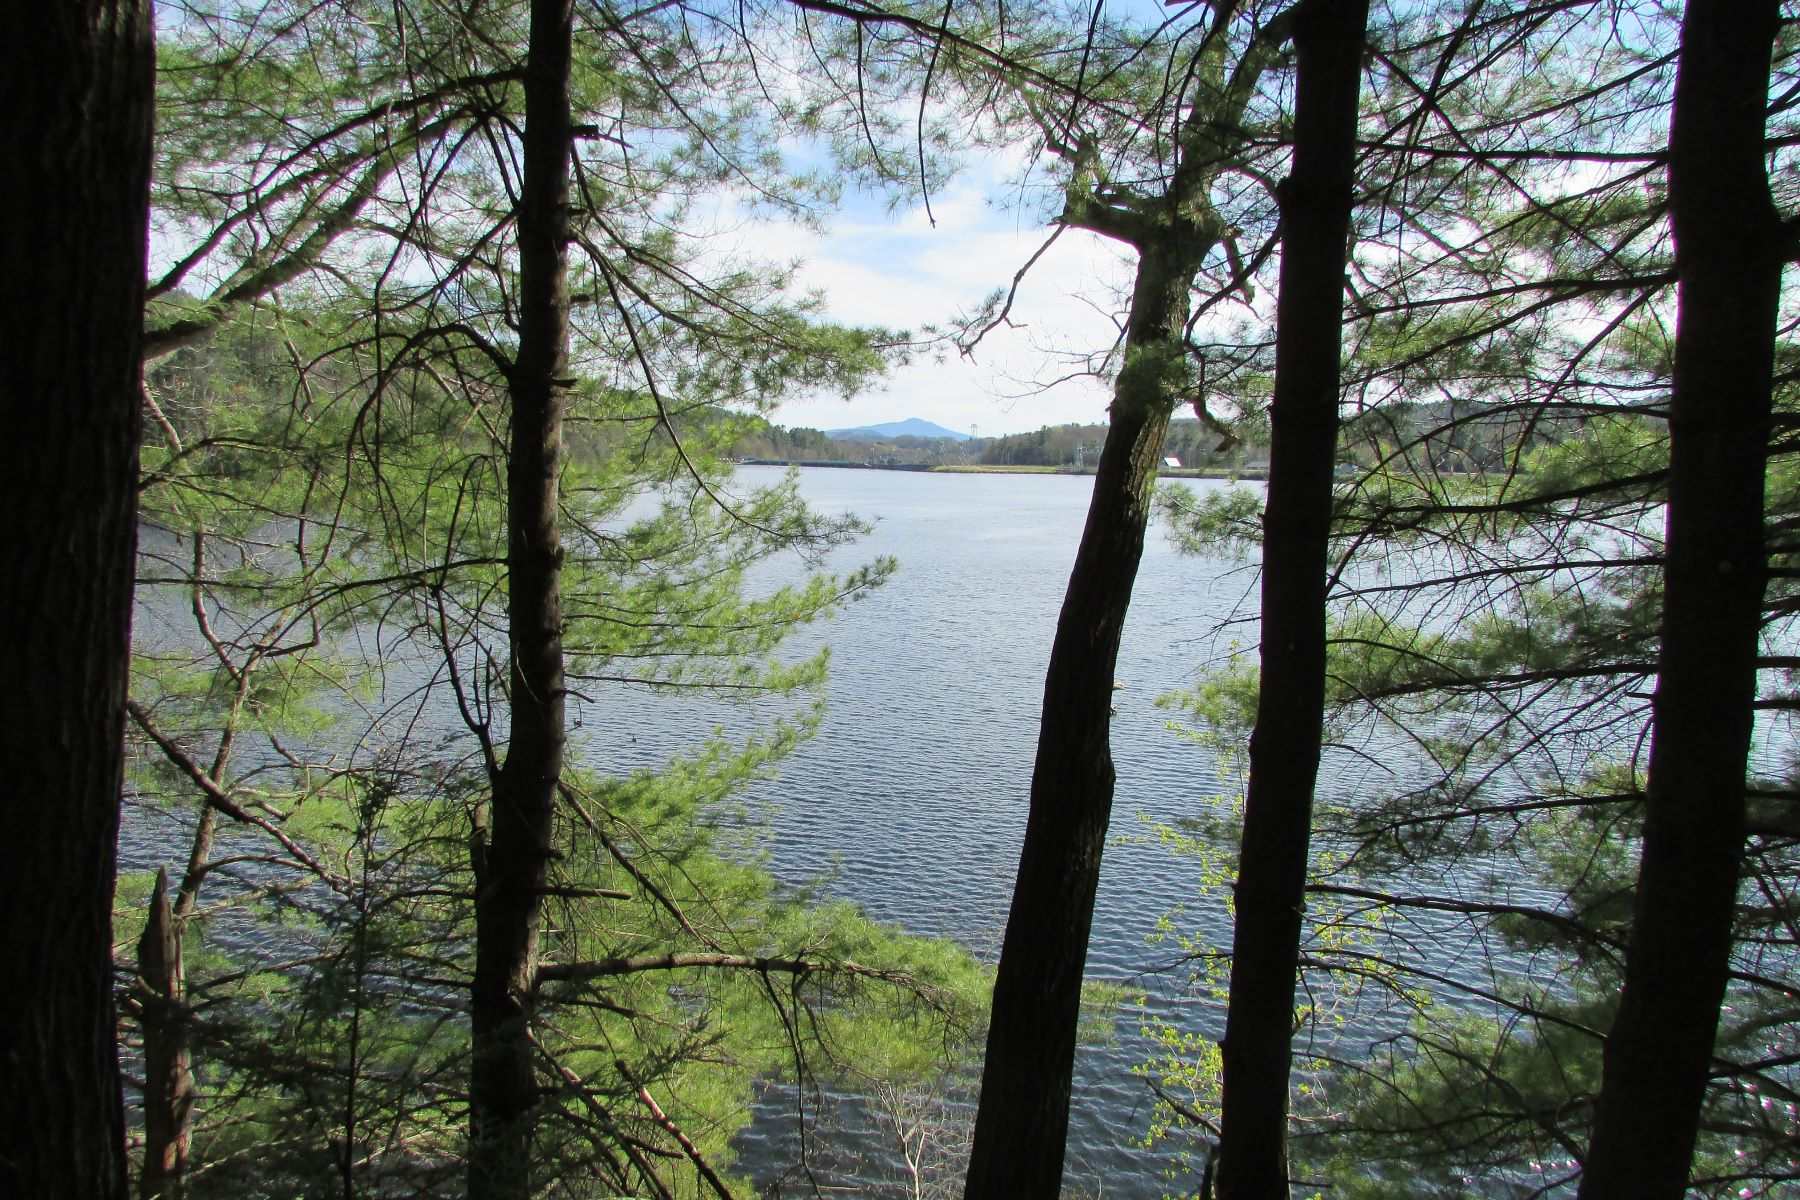 Land for Sale at Lakeview Drive/east Wilder Roa, Lebanon Lebanon, New Hampshire, 03784 United States